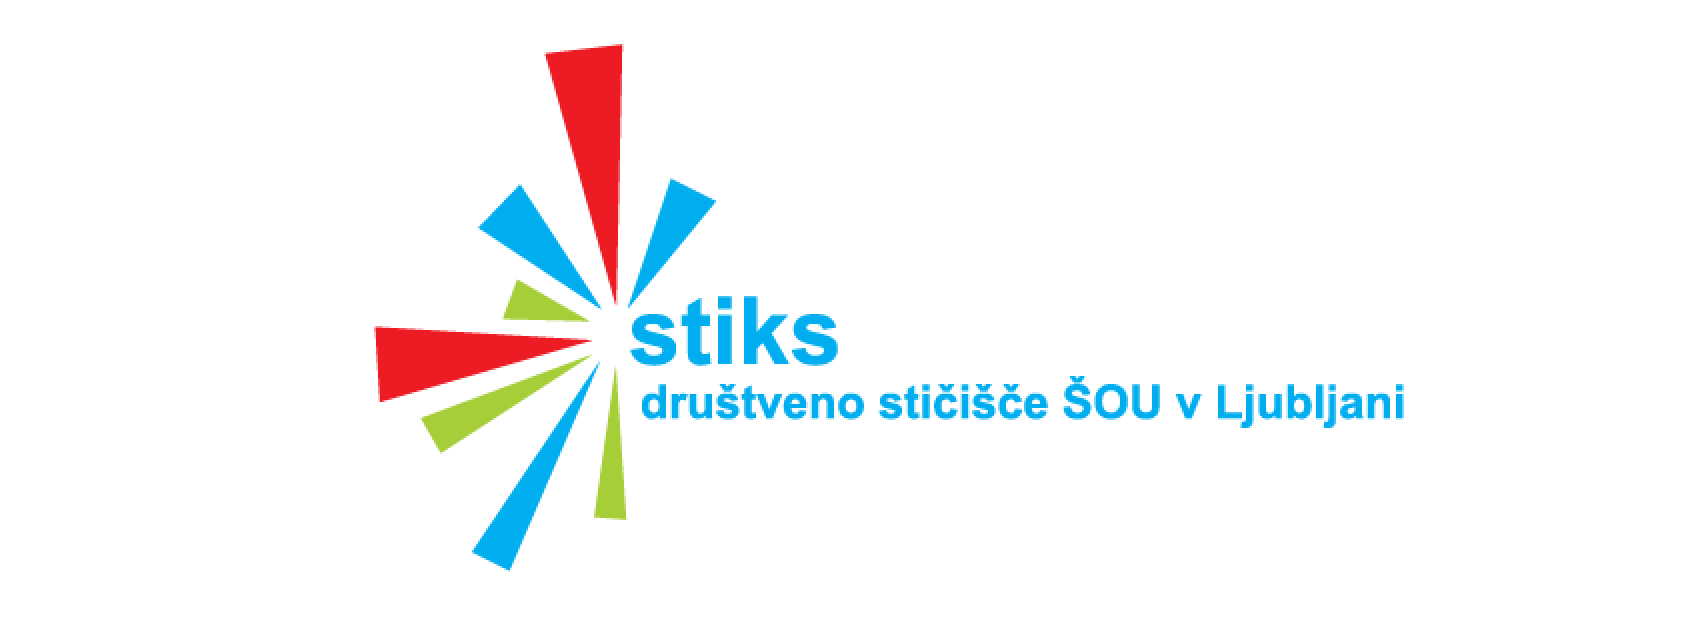 stiks-cover.png